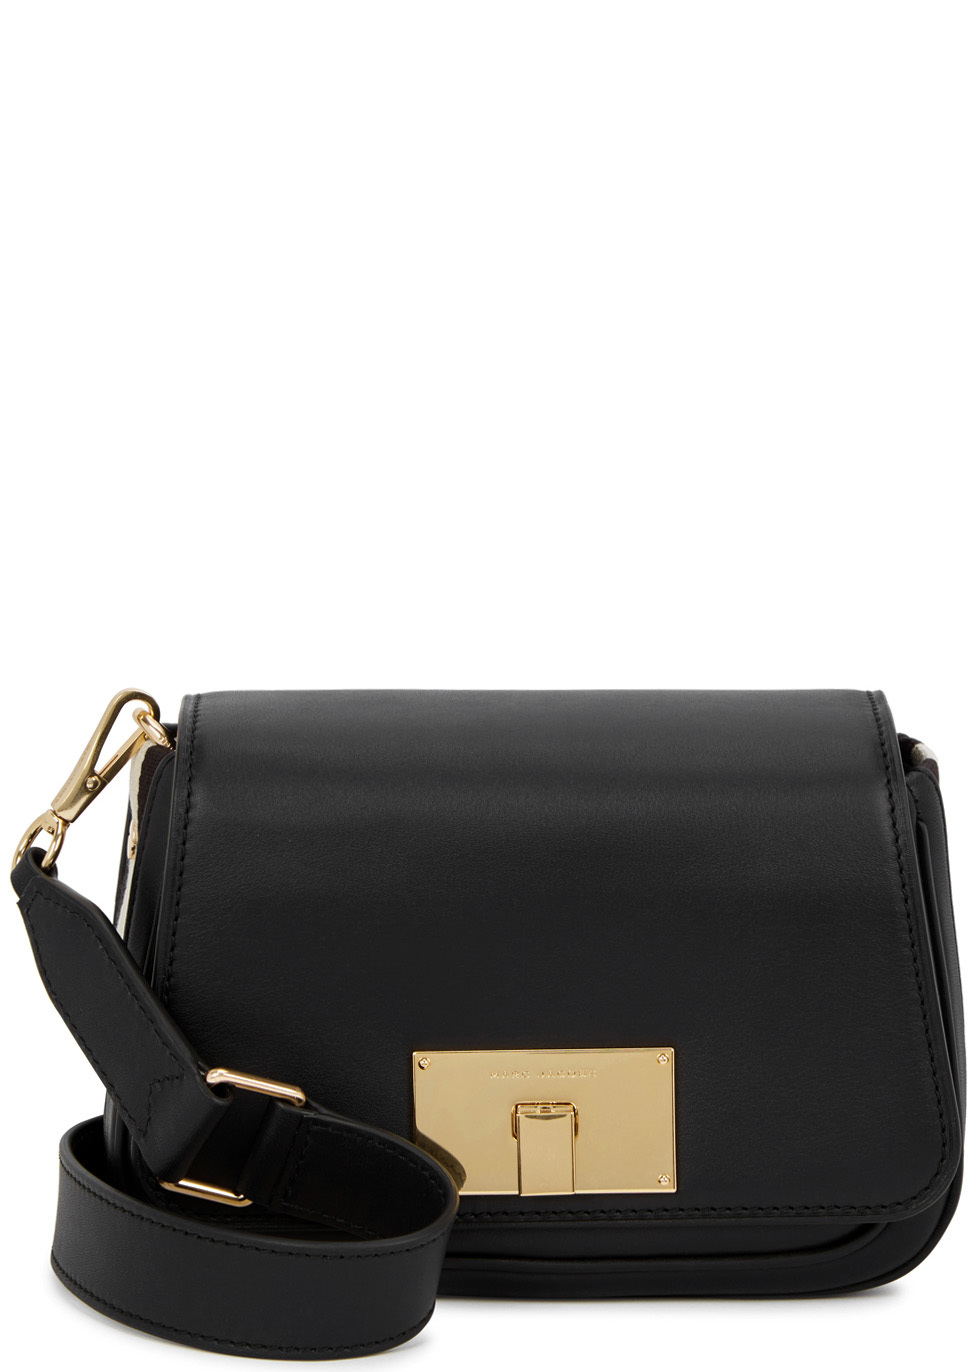 Navigator Black Leather Shoulder Bag - predominant colour: black; occasions: casual; type of pattern: standard; style: shoulder; length: shoulder (tucks under arm); size: small; material: leather; pattern: plain; finish: plain; wardrobe: investment; season: s/s 2017